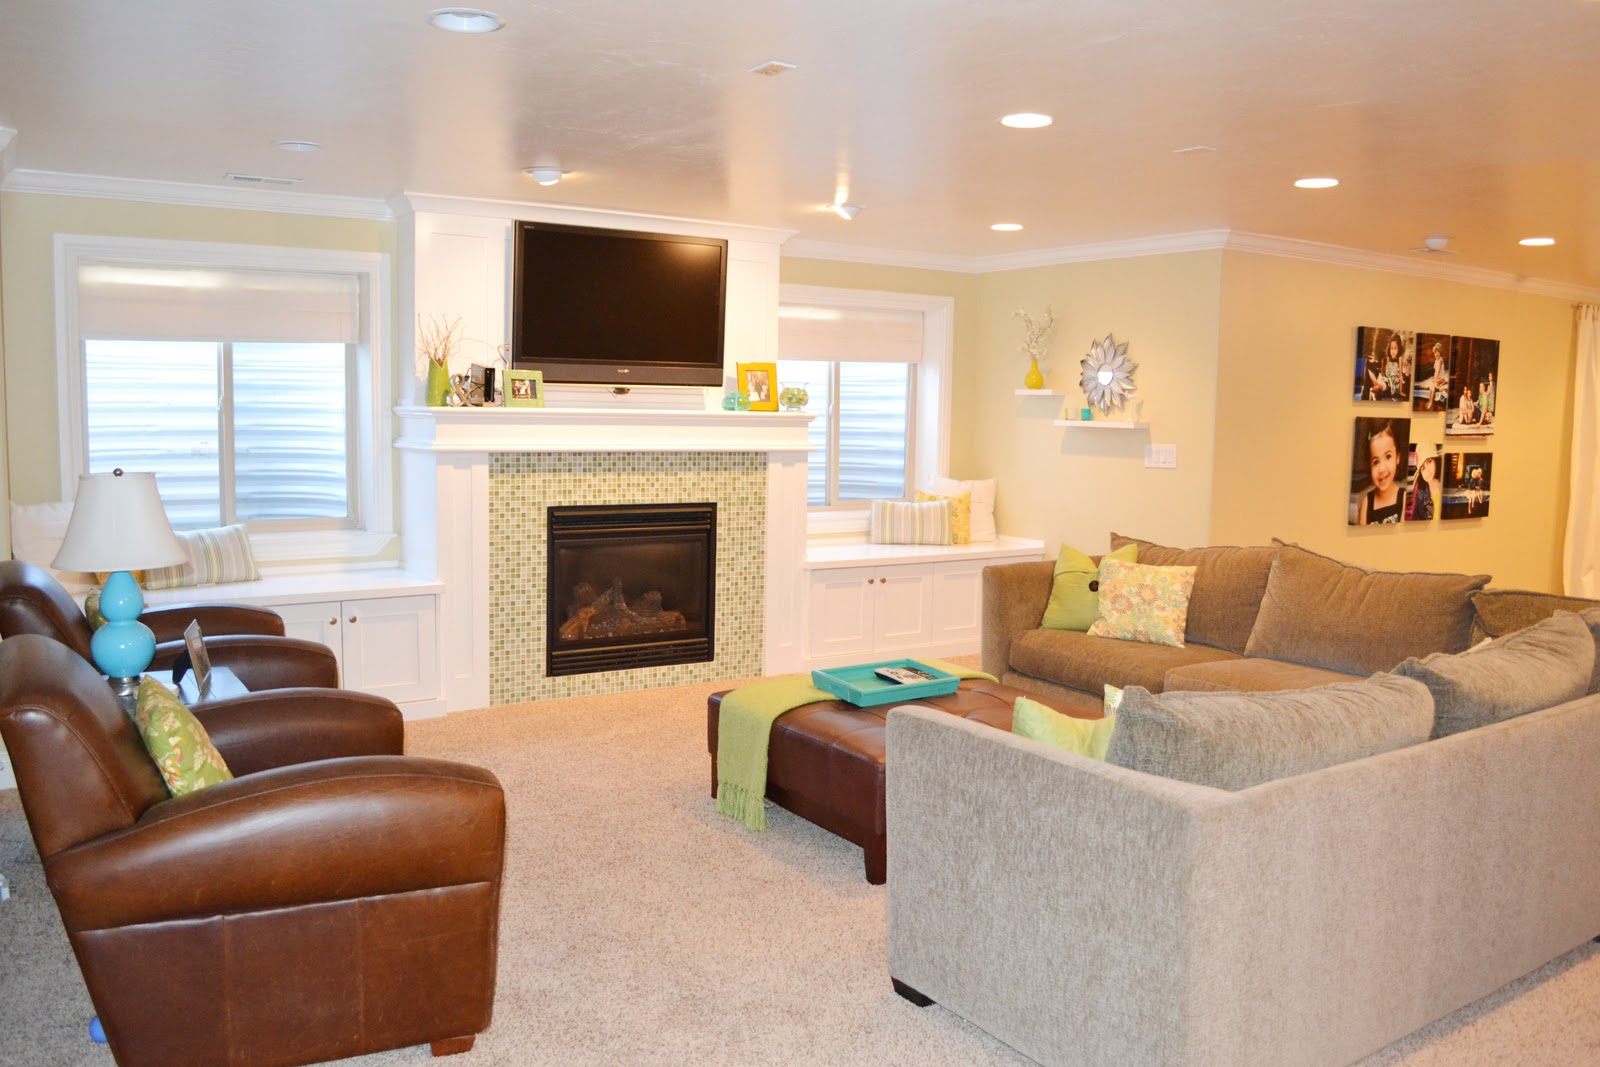 Sita Montgomery Interiors: My Home Tour: Basement Family Room